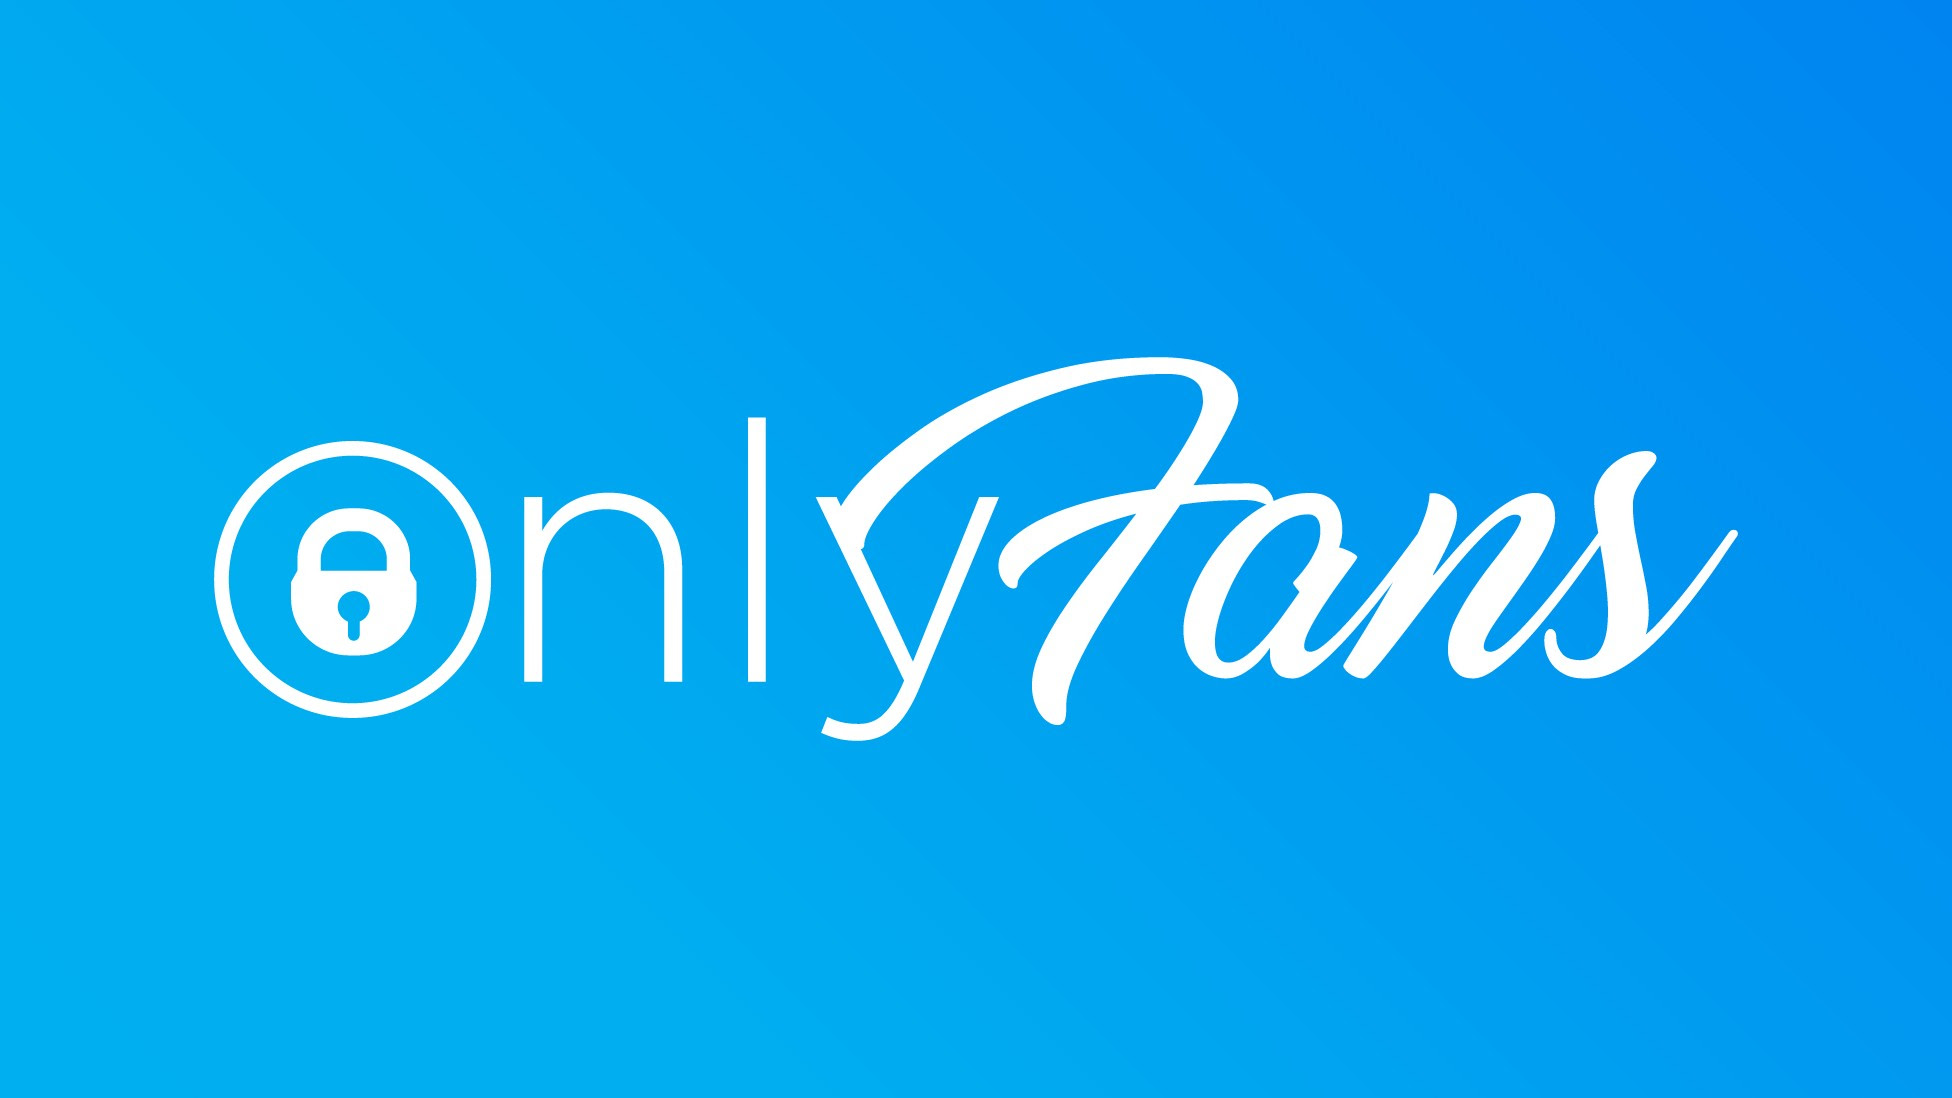 OnlyFans had 130 million users in 2020. Image: OnlyFans